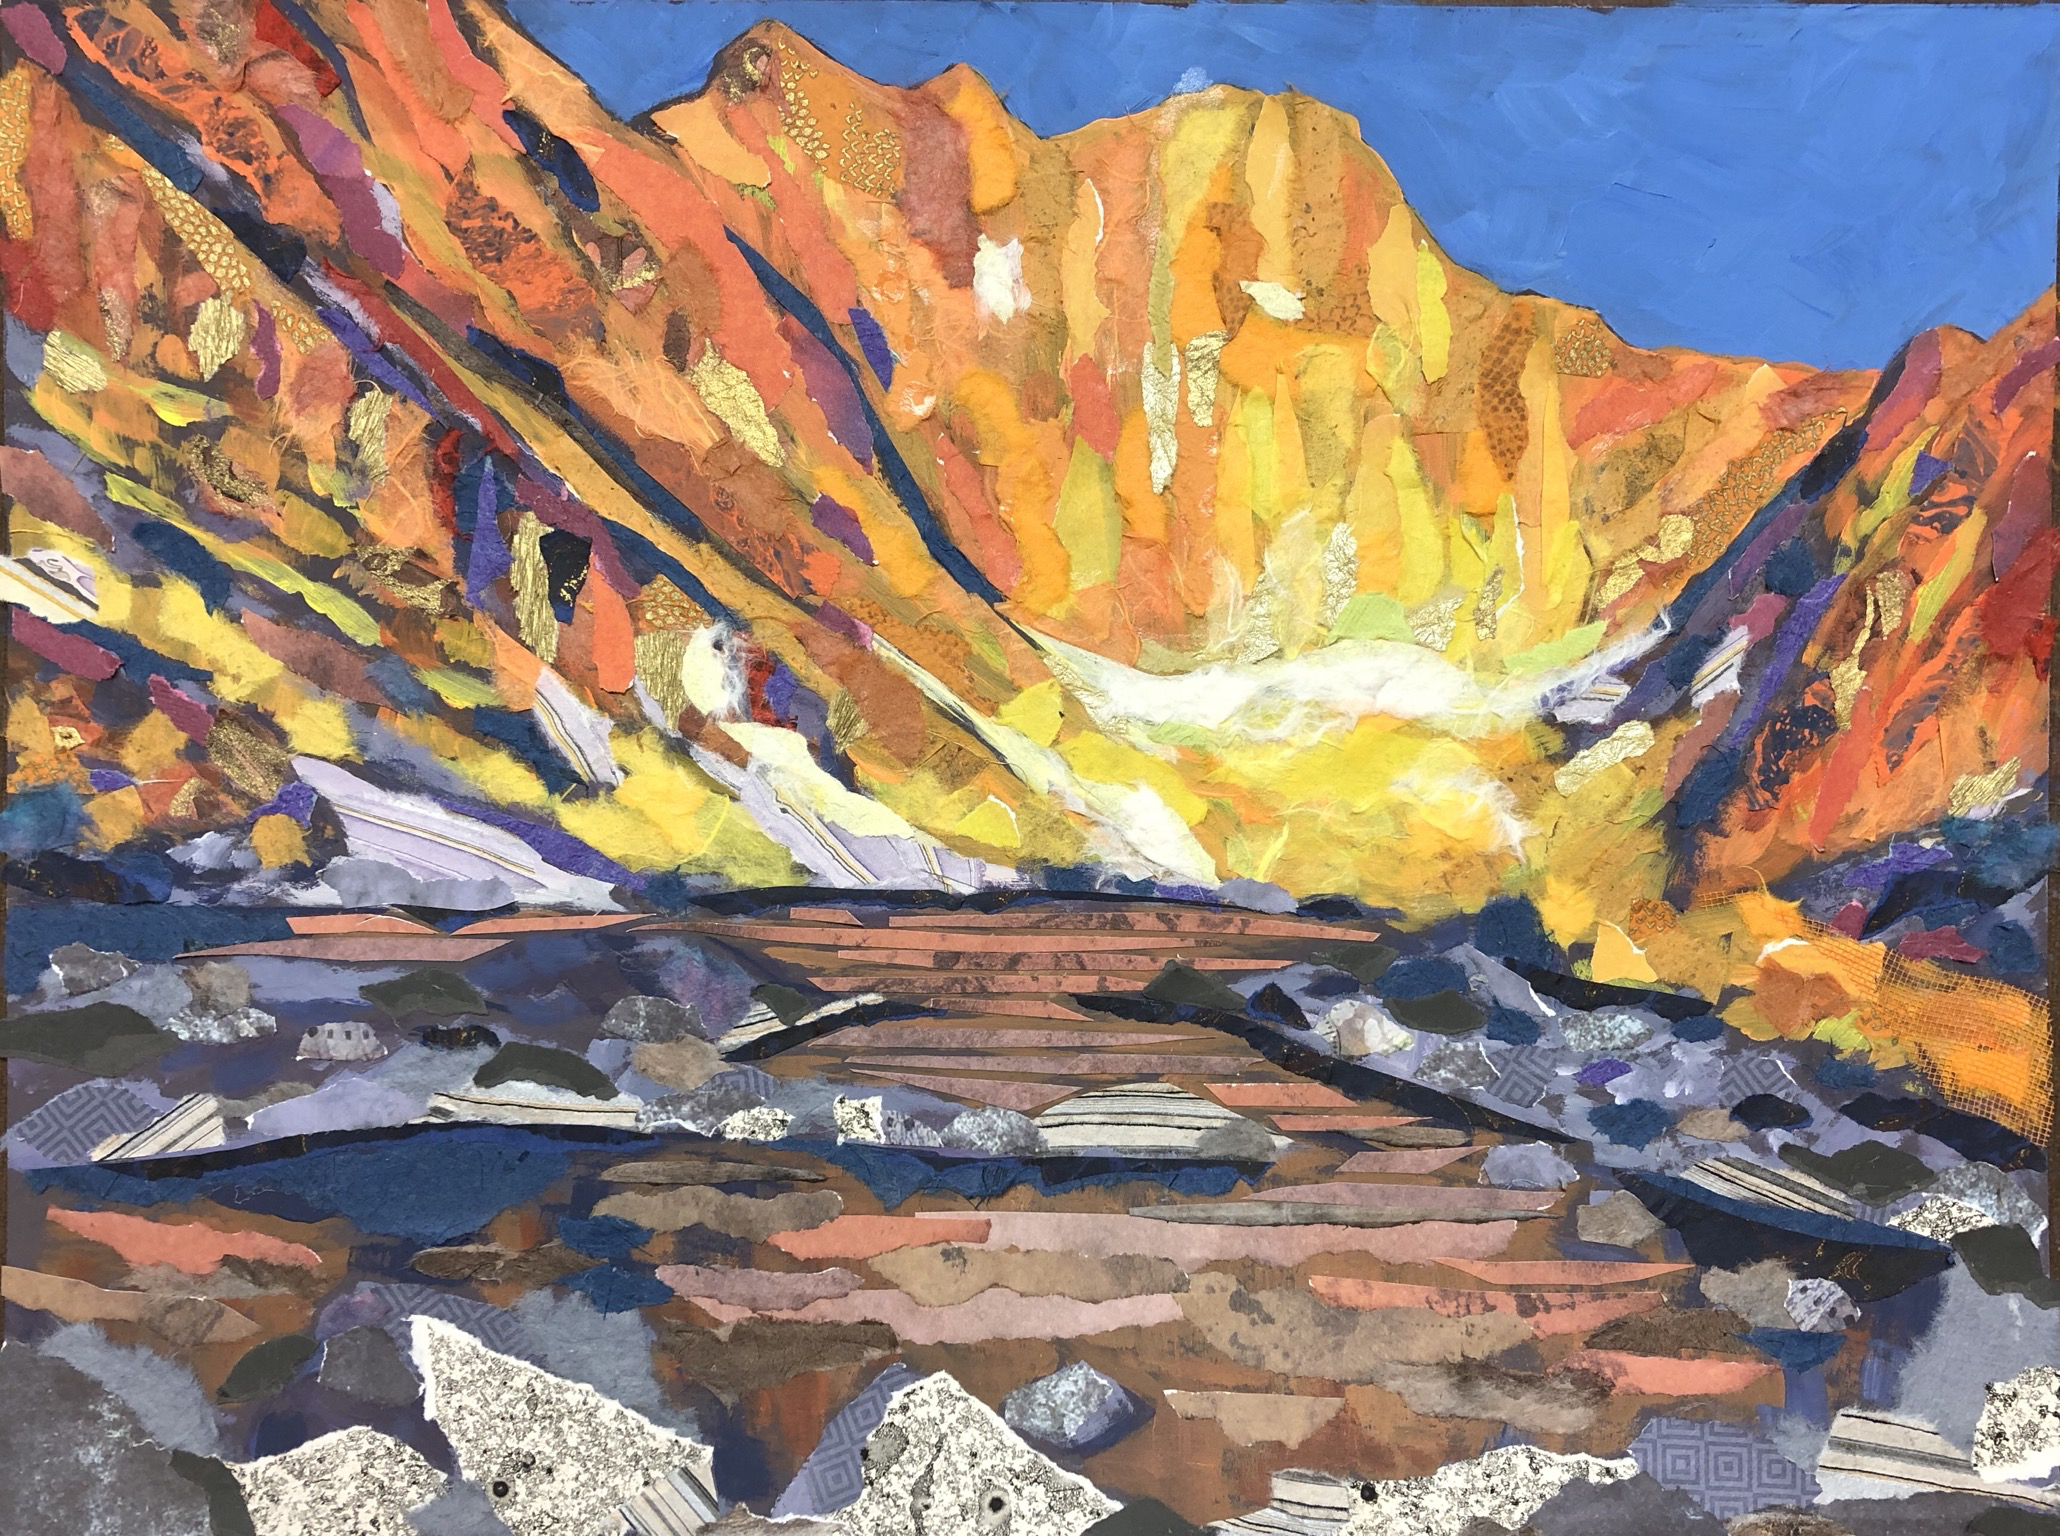 Impressions of Chasm Lake, Rocky Mountain National Park - mixed media